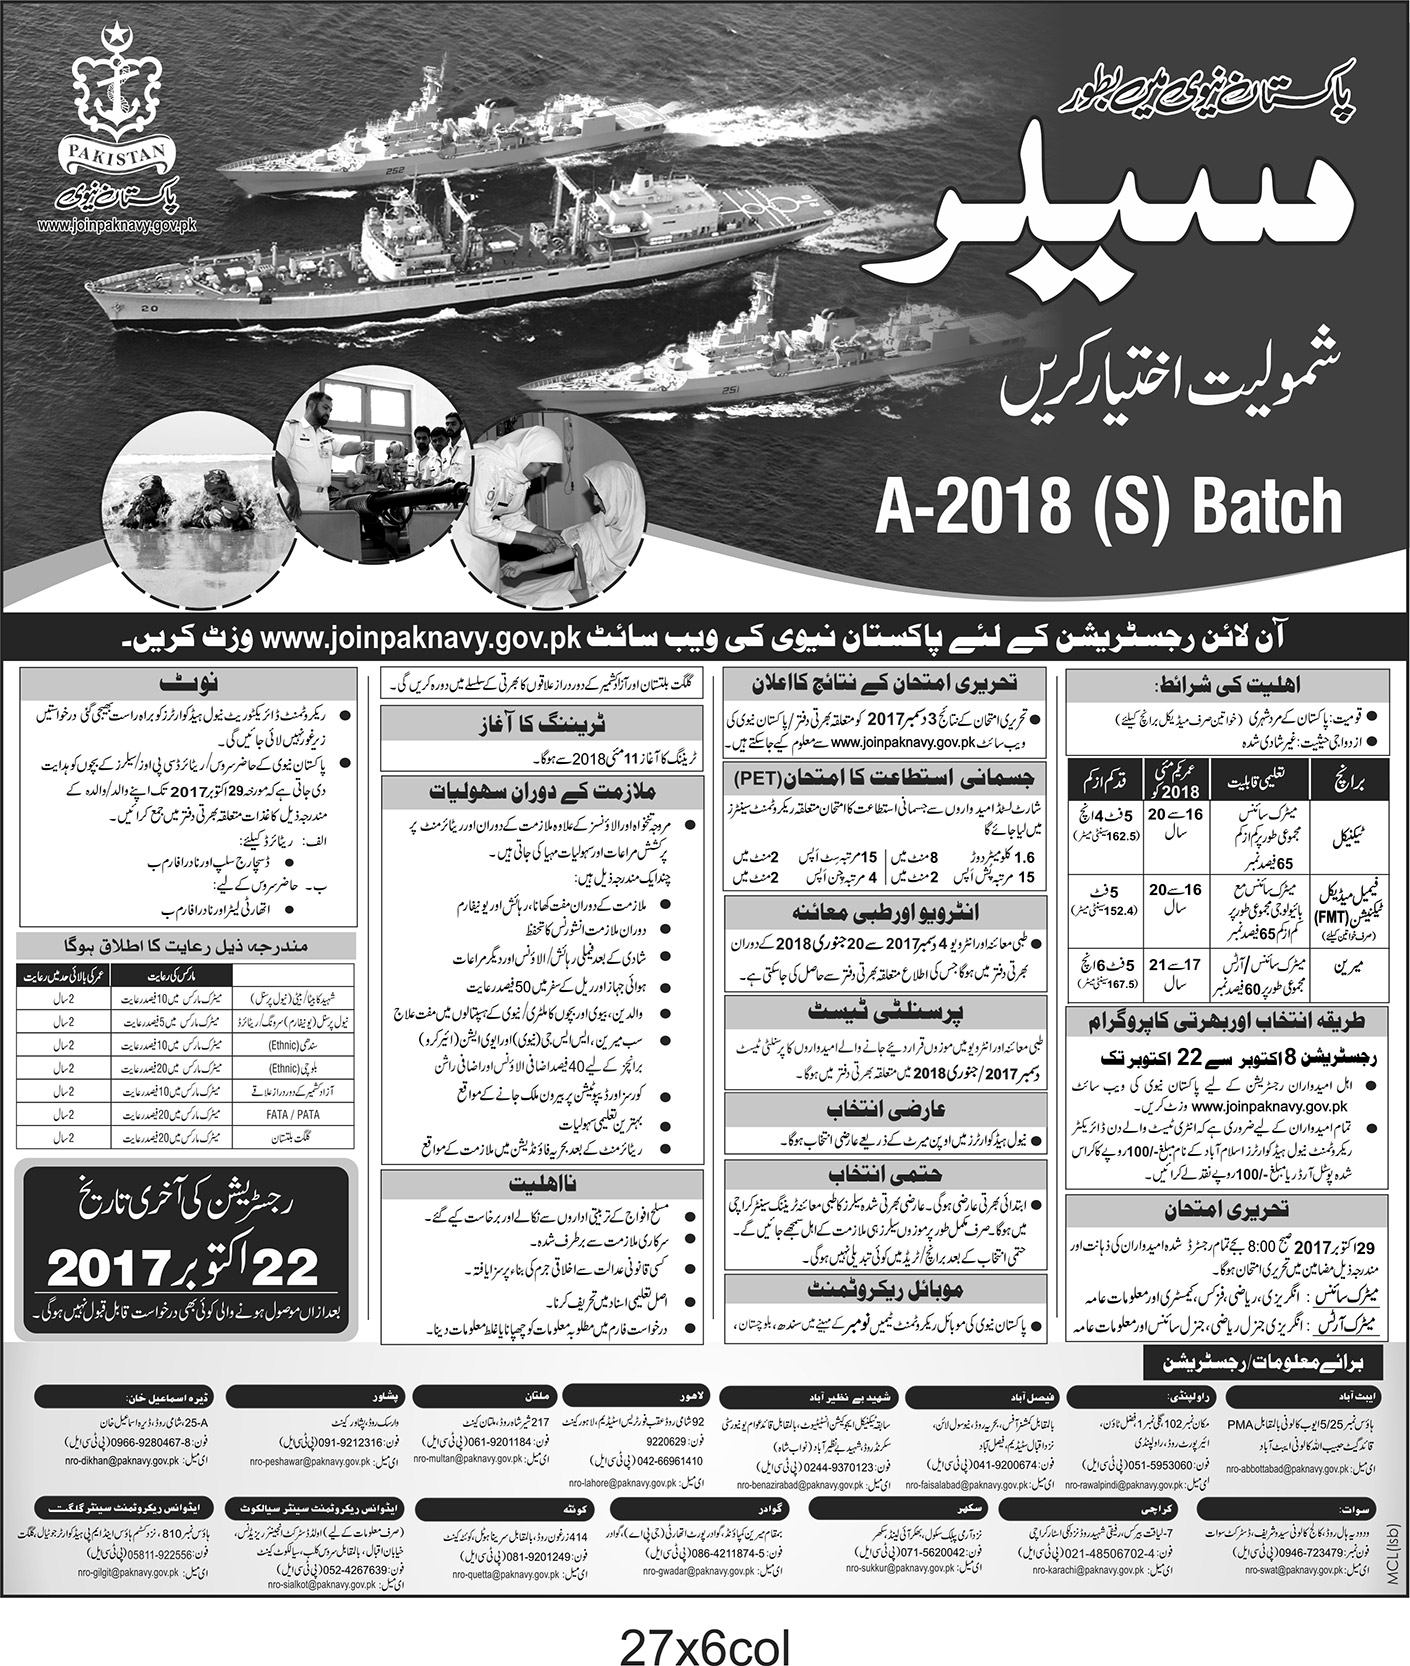 Join Pak Navy As Sailor 2018 A Batch (S) Online Registration Form, Requirements